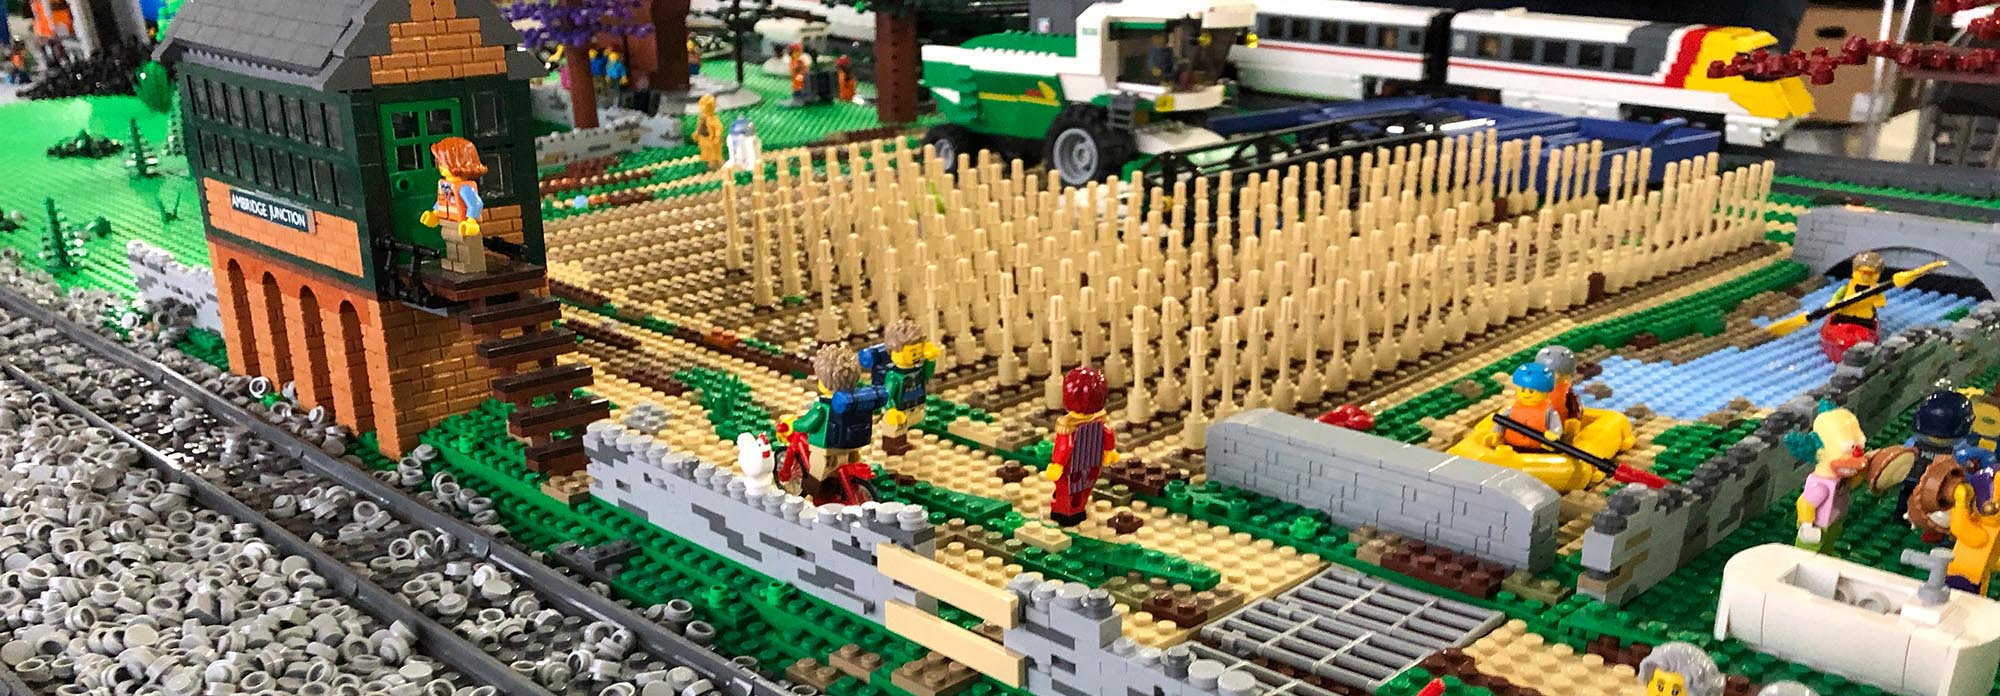 LEGO railway model landscapes